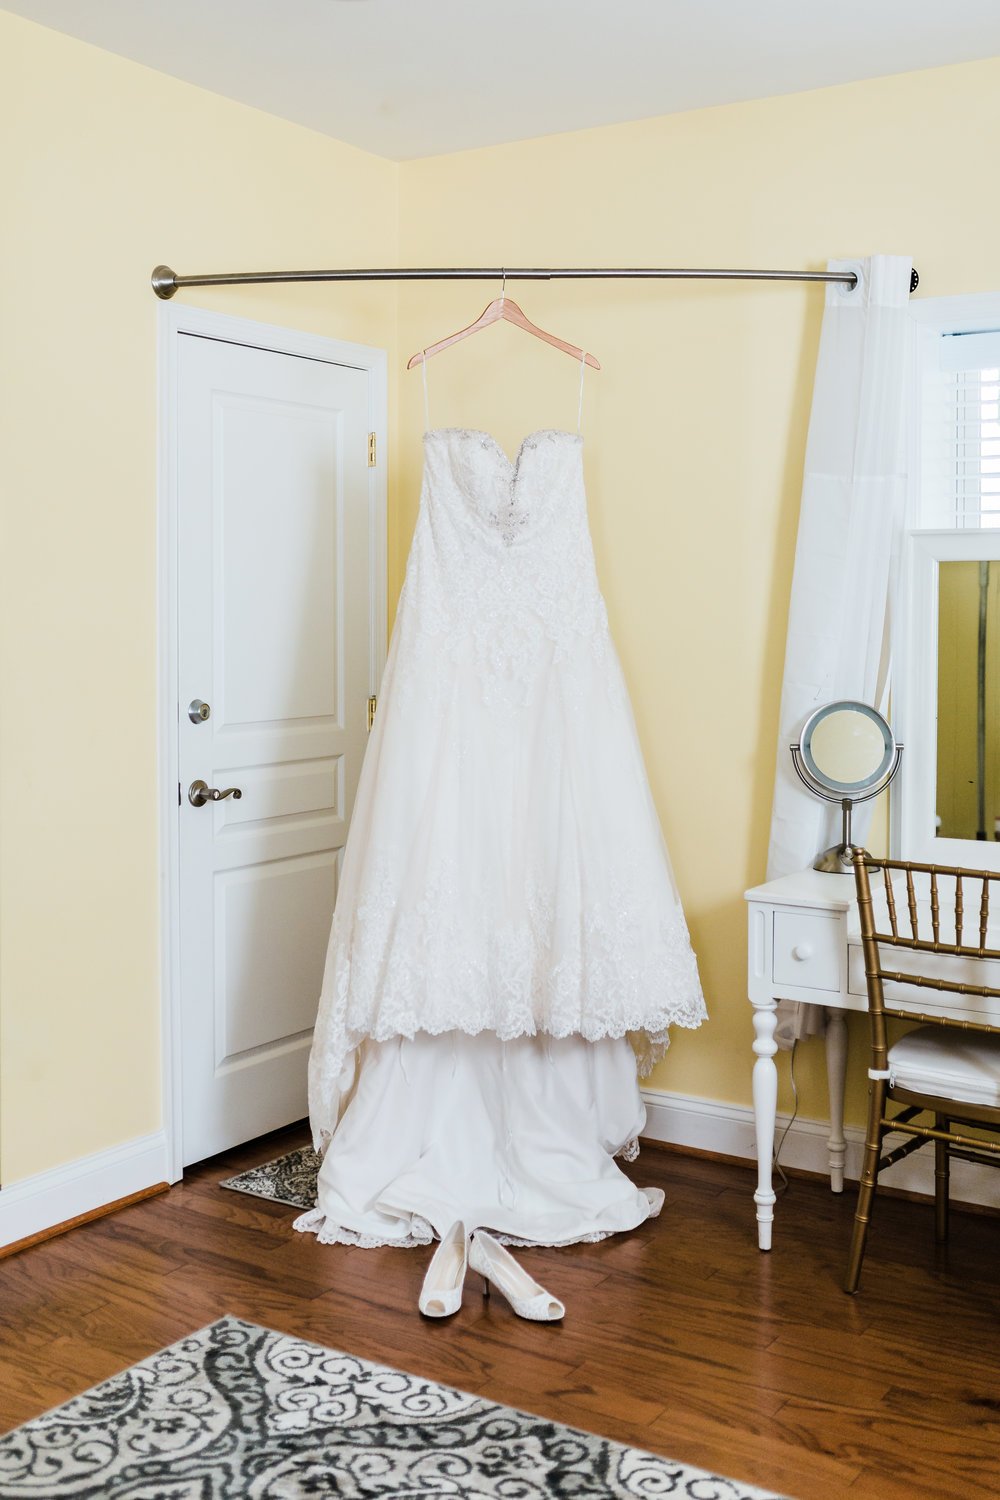 brides wedding gown details - kurtz's beach wedding - pasadena md wedding photography